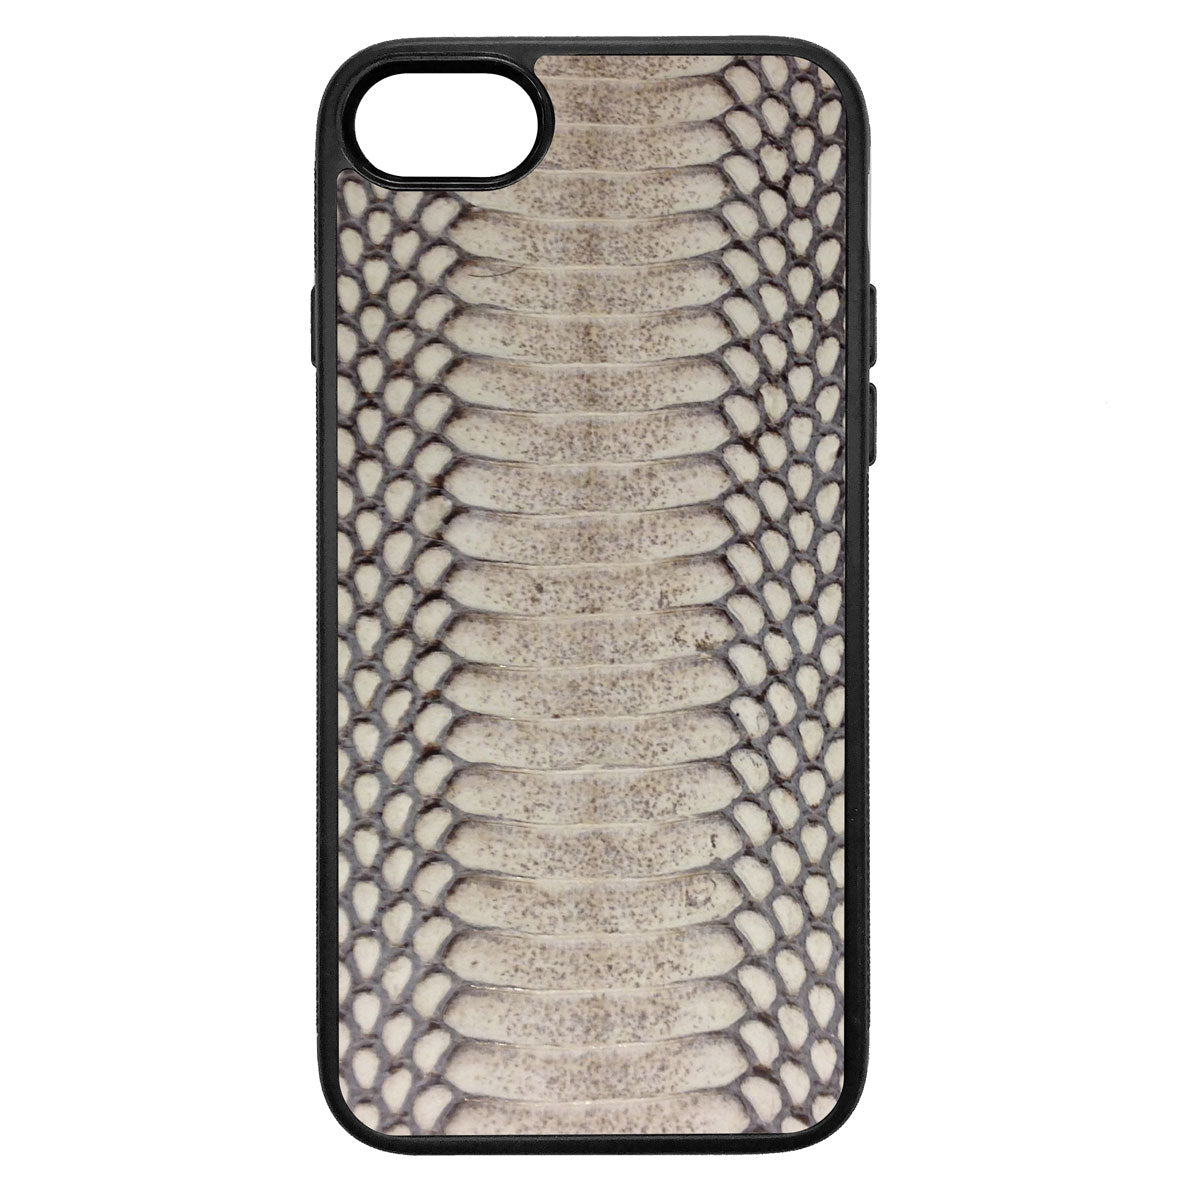 Cobra iPhone 8 Leather Case